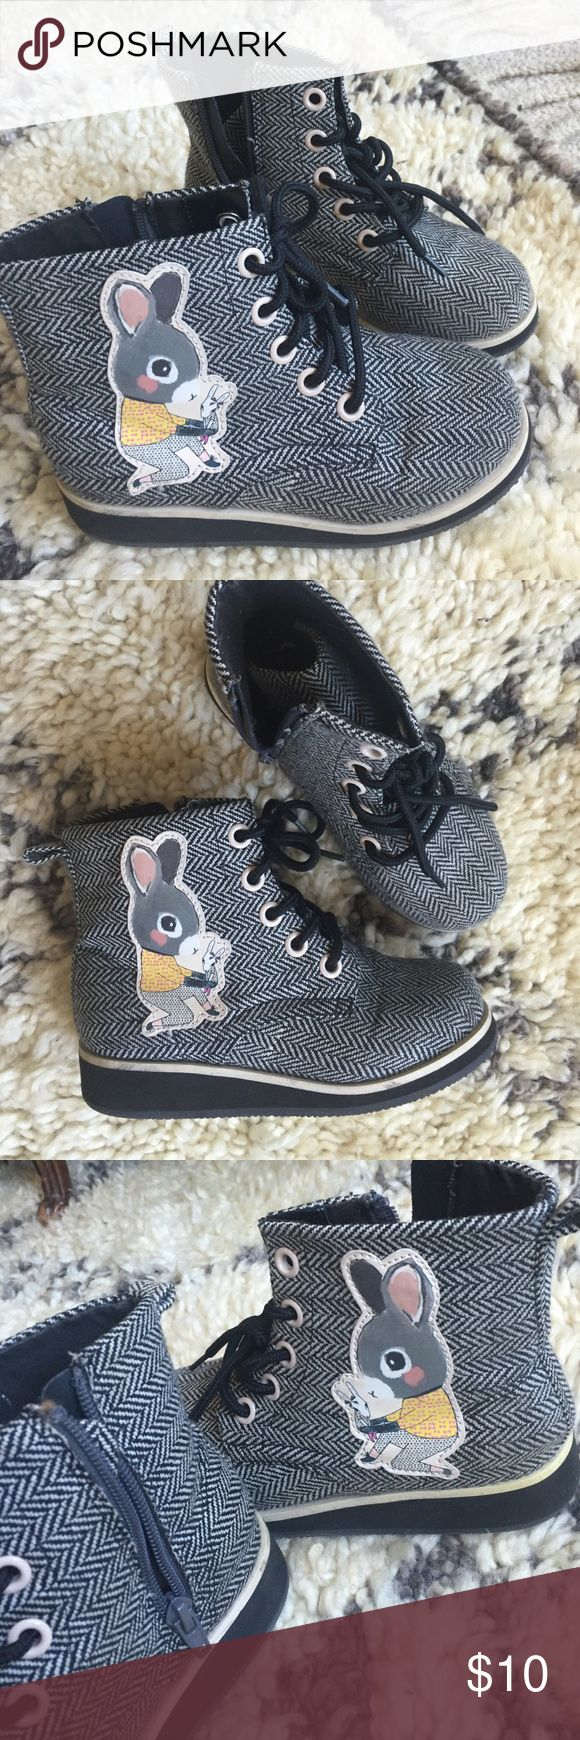 Girls shoes H&M  high tops boots SIZE 13 Girls high top boots/booties in SIZE 13 youth (euro size 31?) with rubber button, in cute tweed fabric with bunnies. WORN ONCE! Like brand new. They didn't fit my daughter so my loss your gain. H&M Shoes Sneakers